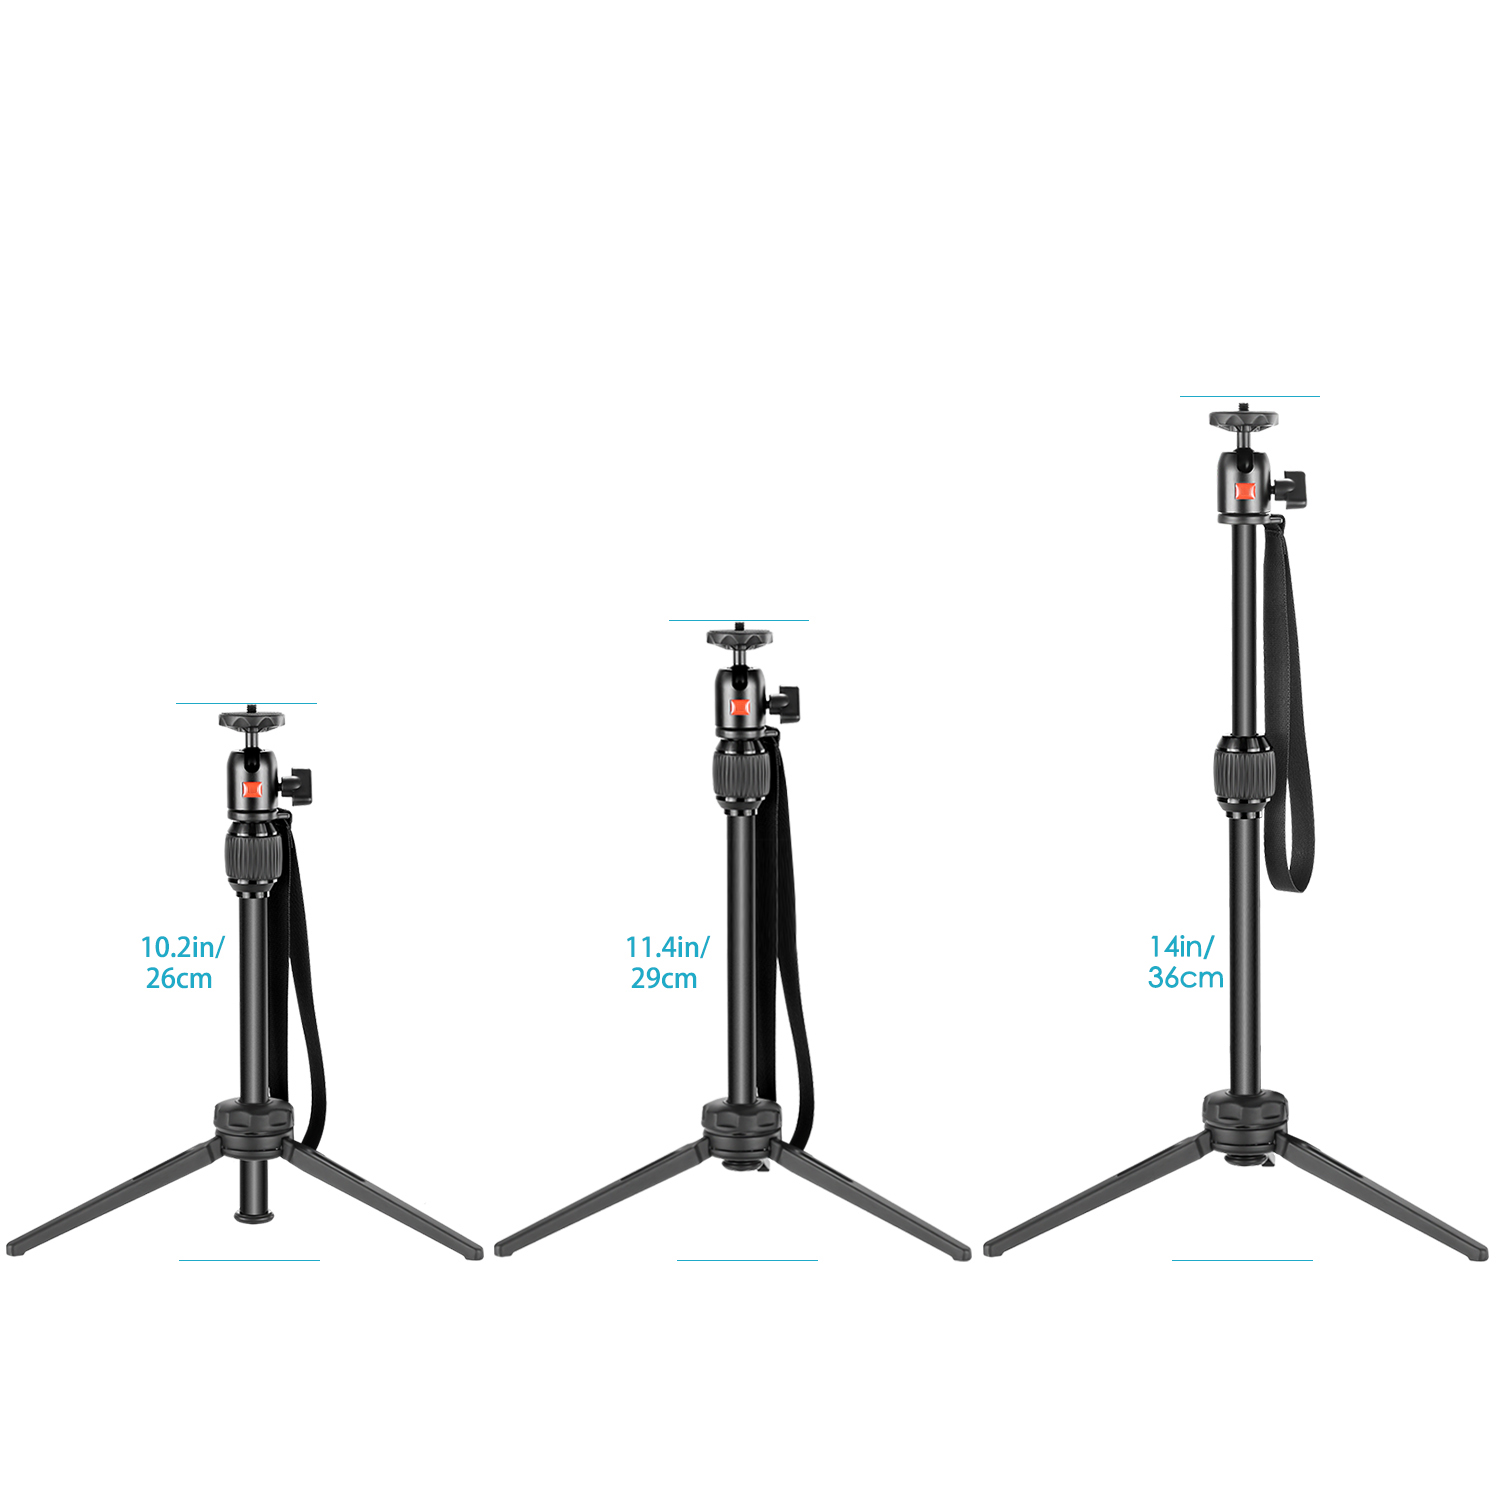 Neewer Kt 200 Table Top Tripod For Dslr Cameras